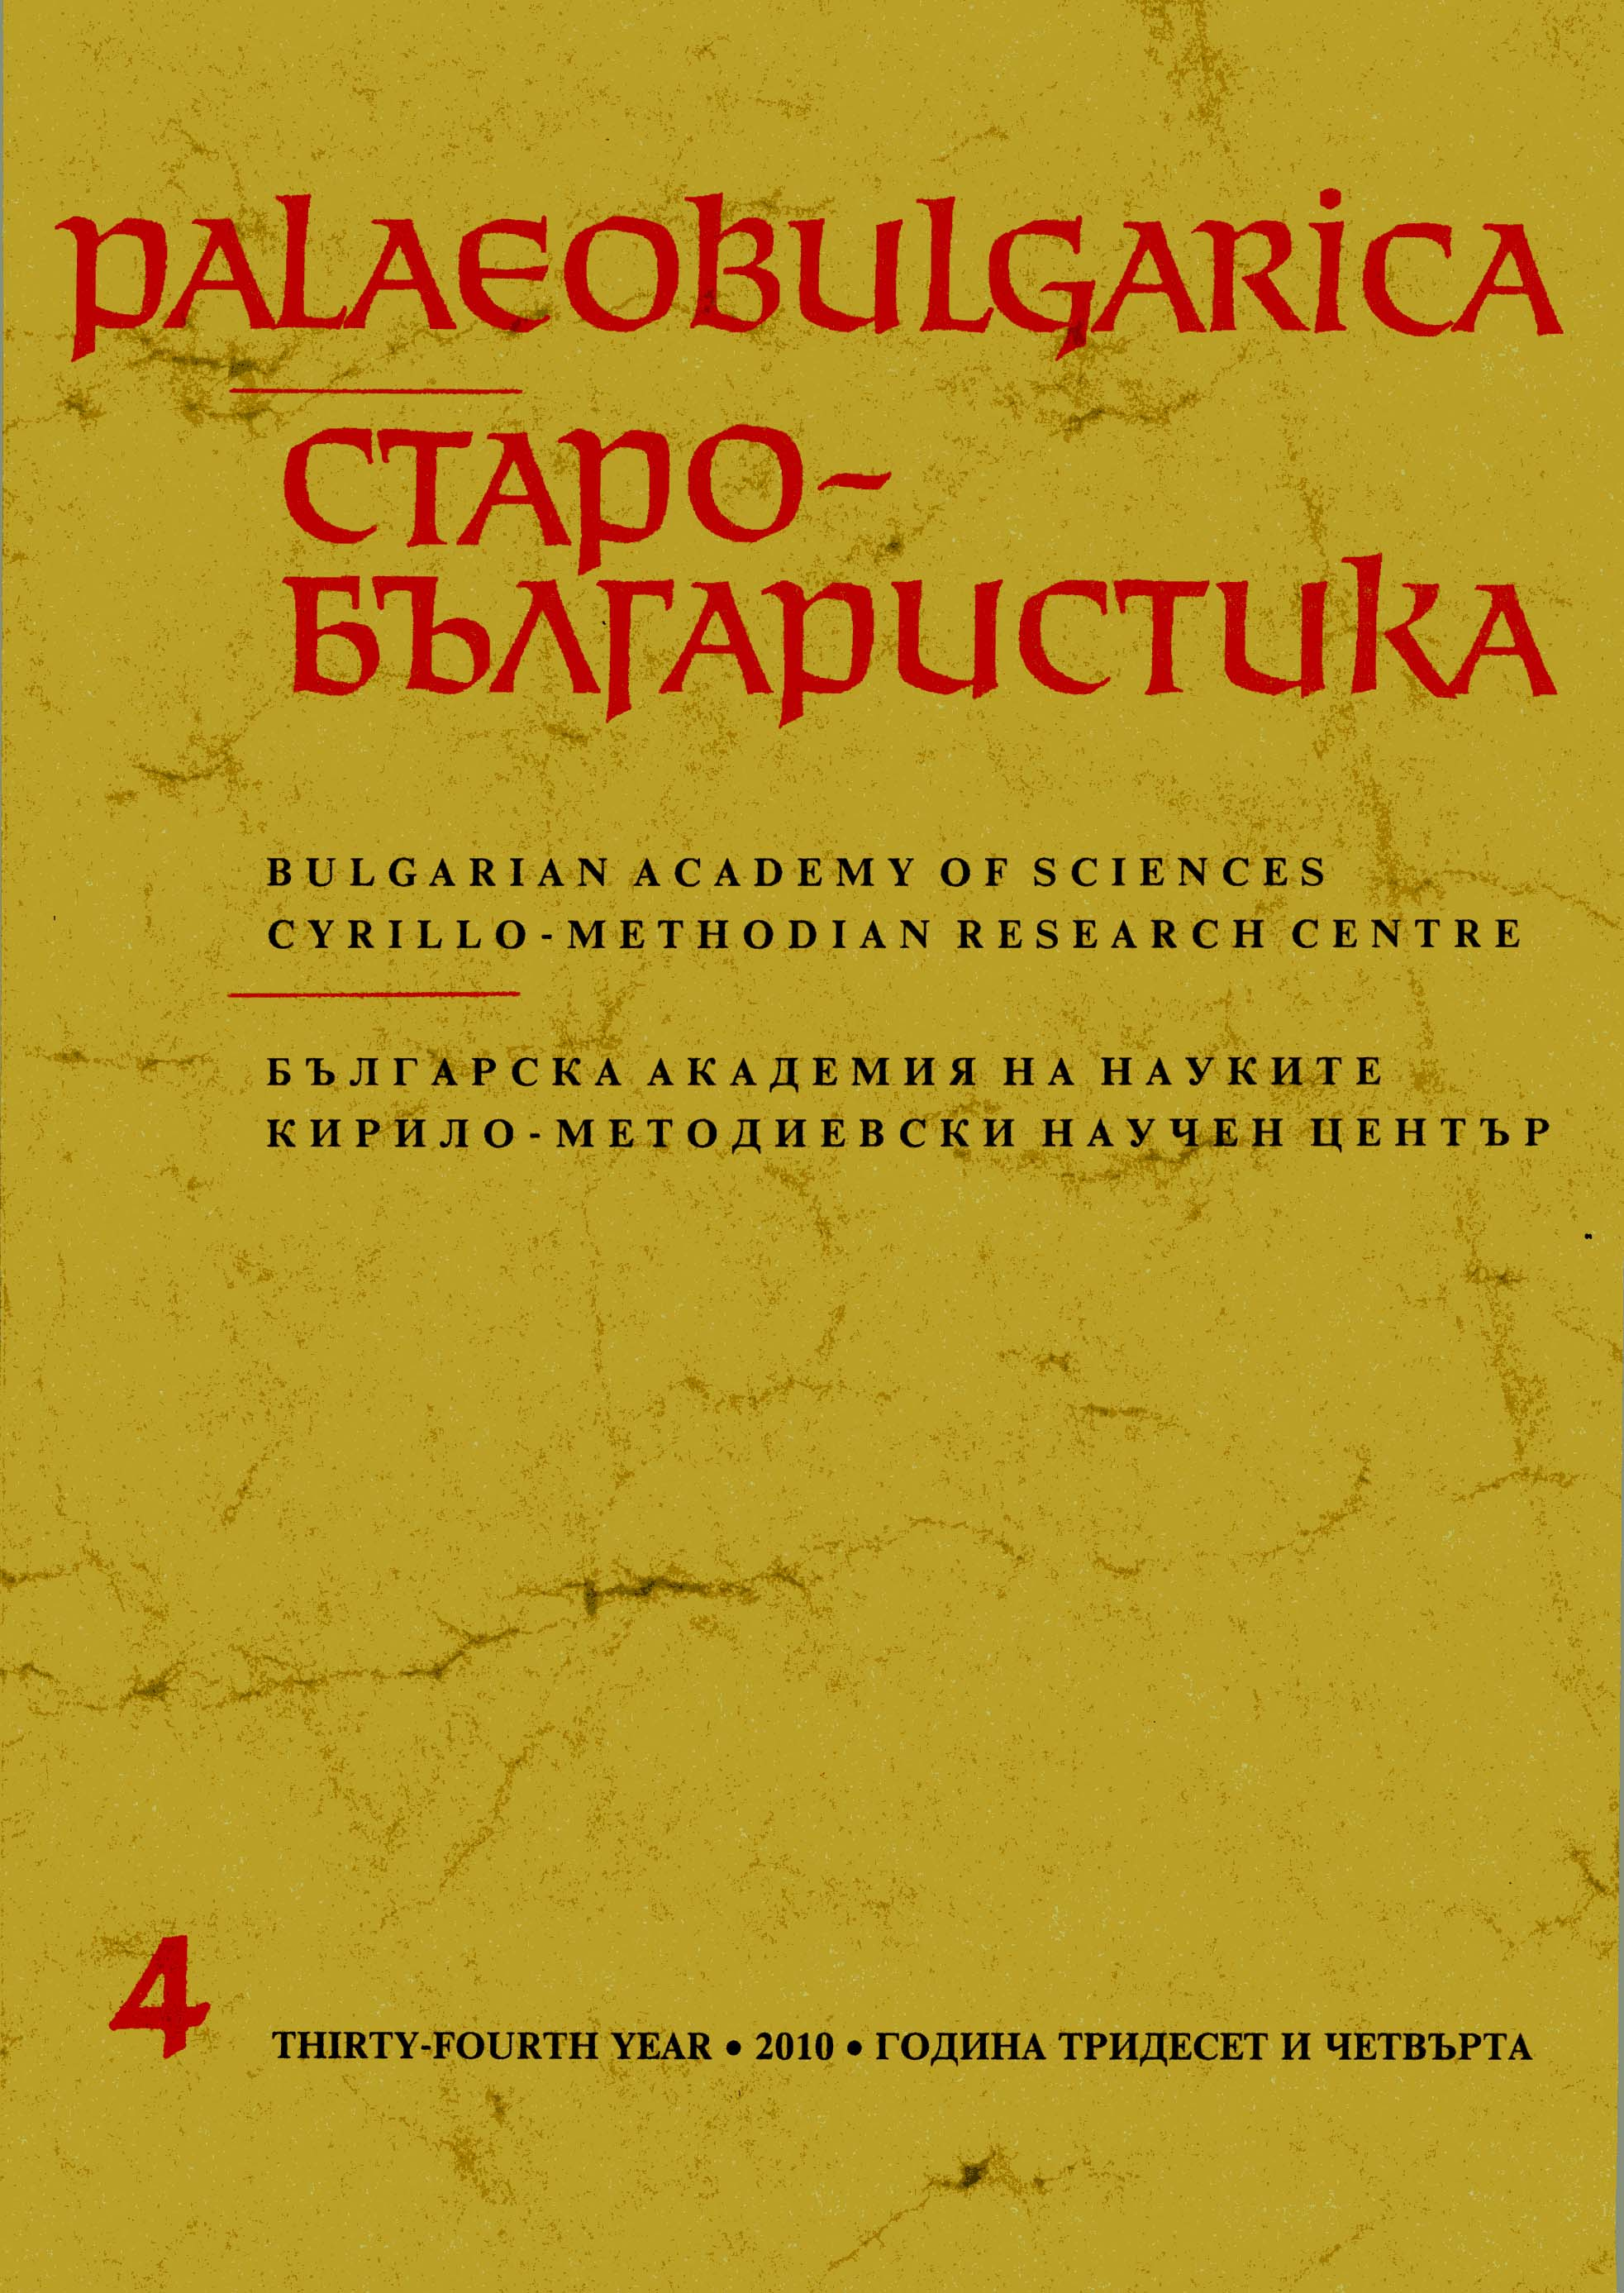 A Philological Contribution to the Study of the Institutional Development of the Early Mediaeval Bulgarian Khaganate-Kingdom Cover Image